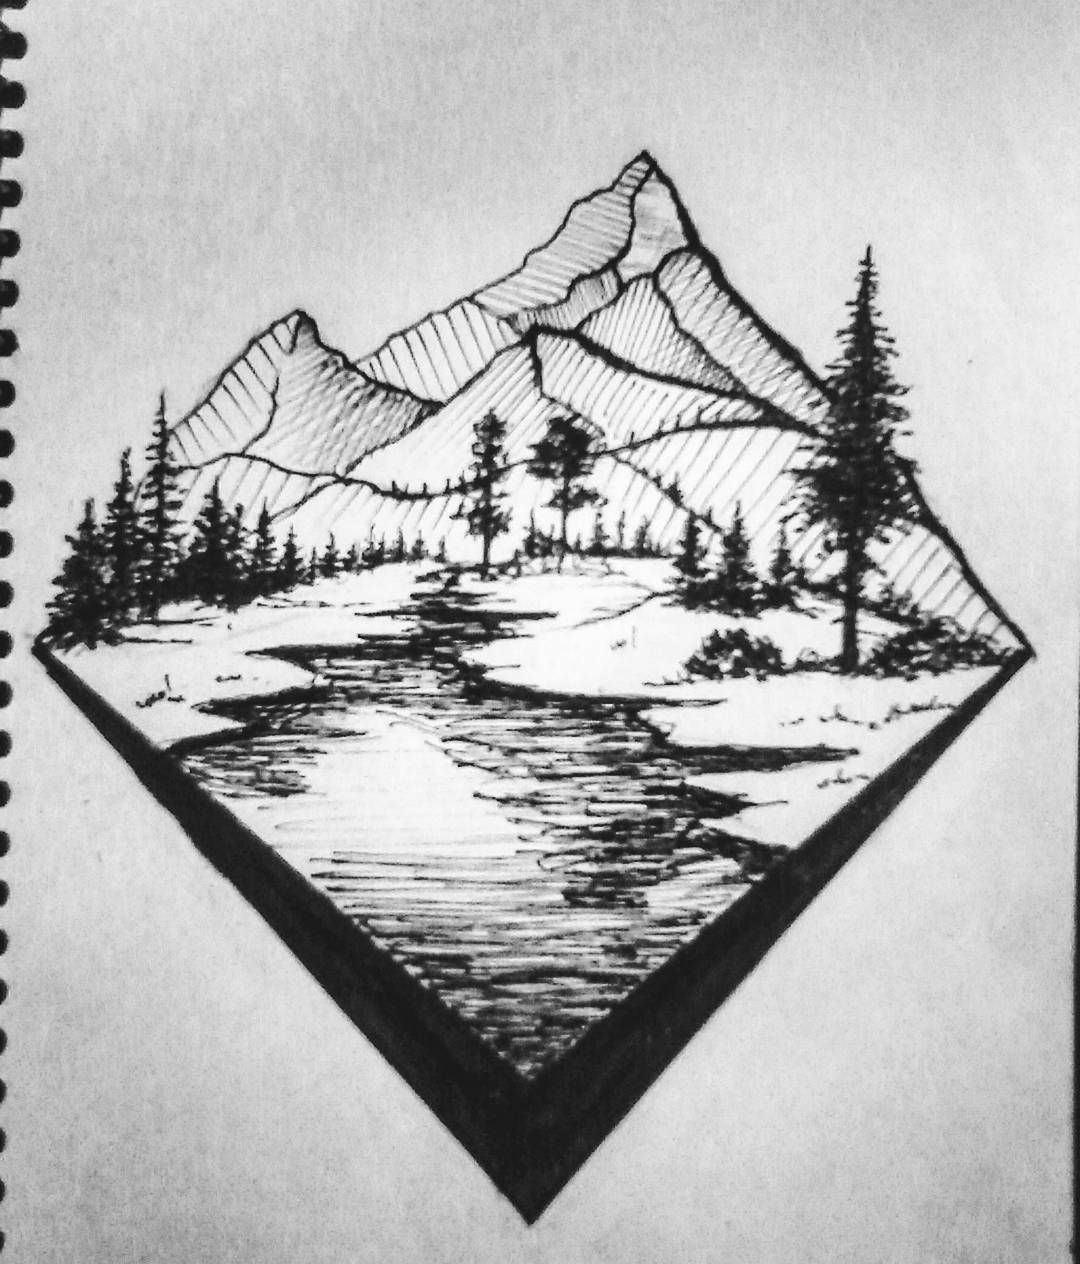 Drawn river elementary drawing exam nature #scetch #art art #paint #illustration